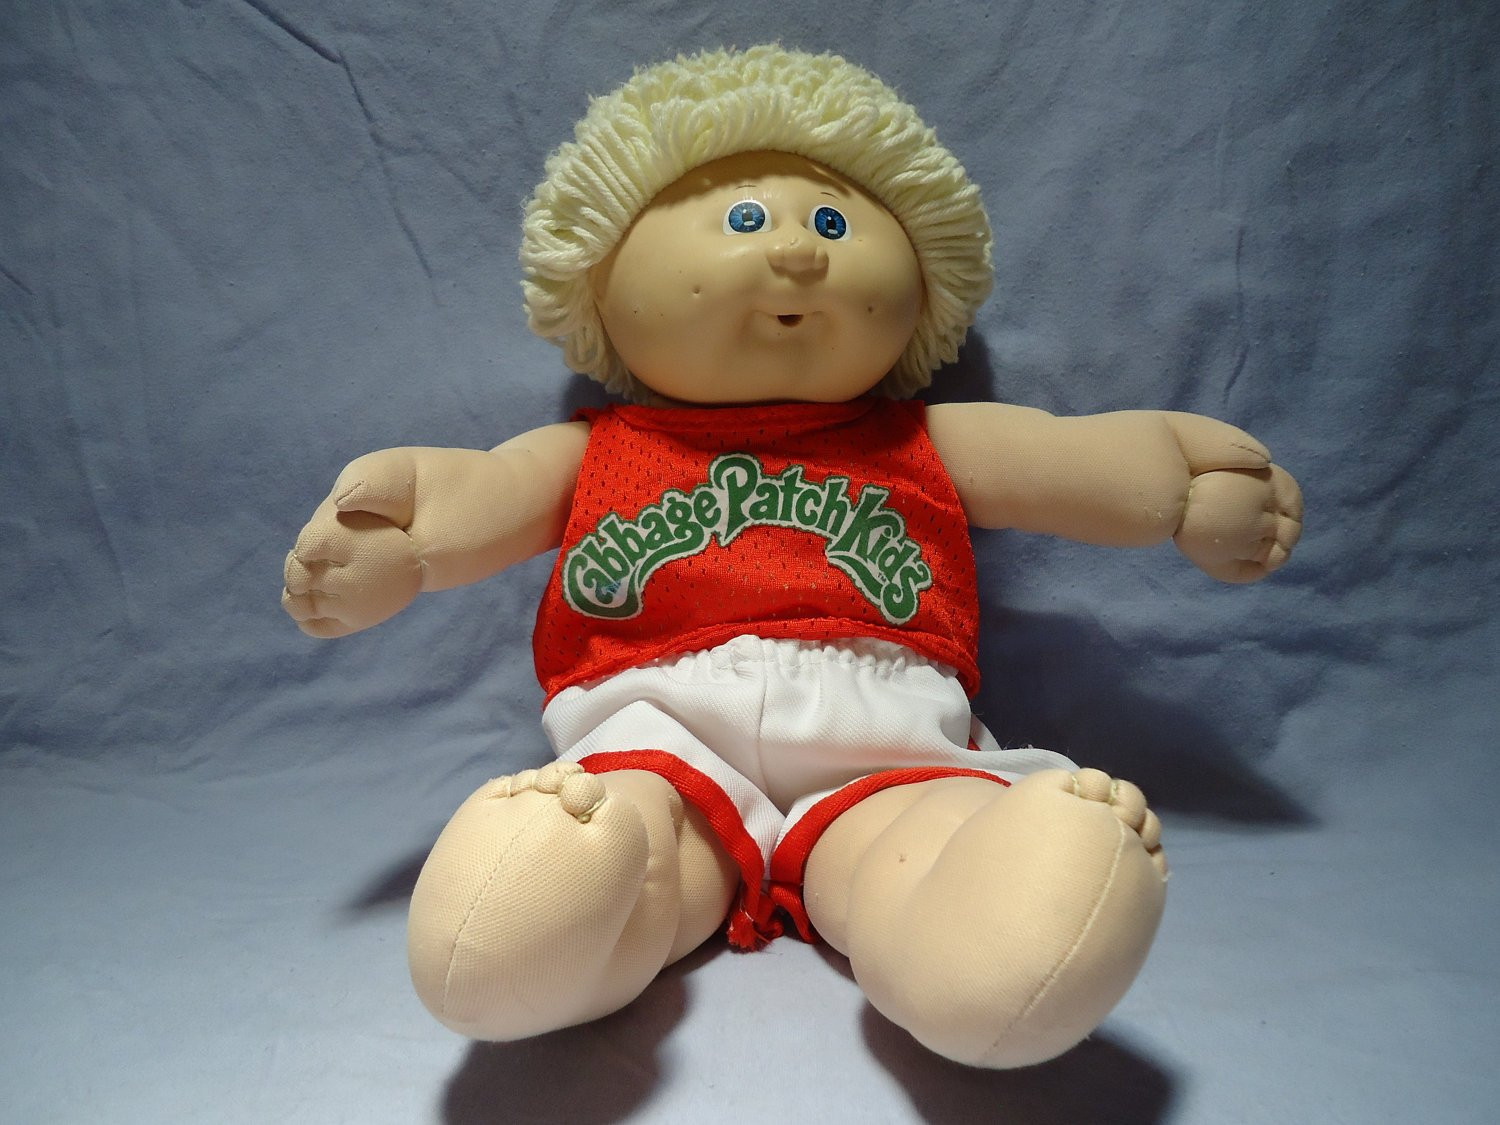 New Vintage Cabbage Patch Kids Doll Appalachian Artworks 1980s Boy Collectible Cabbage Patch Dolls Of Luxury 42 Pics Collectible Cabbage Patch Dolls